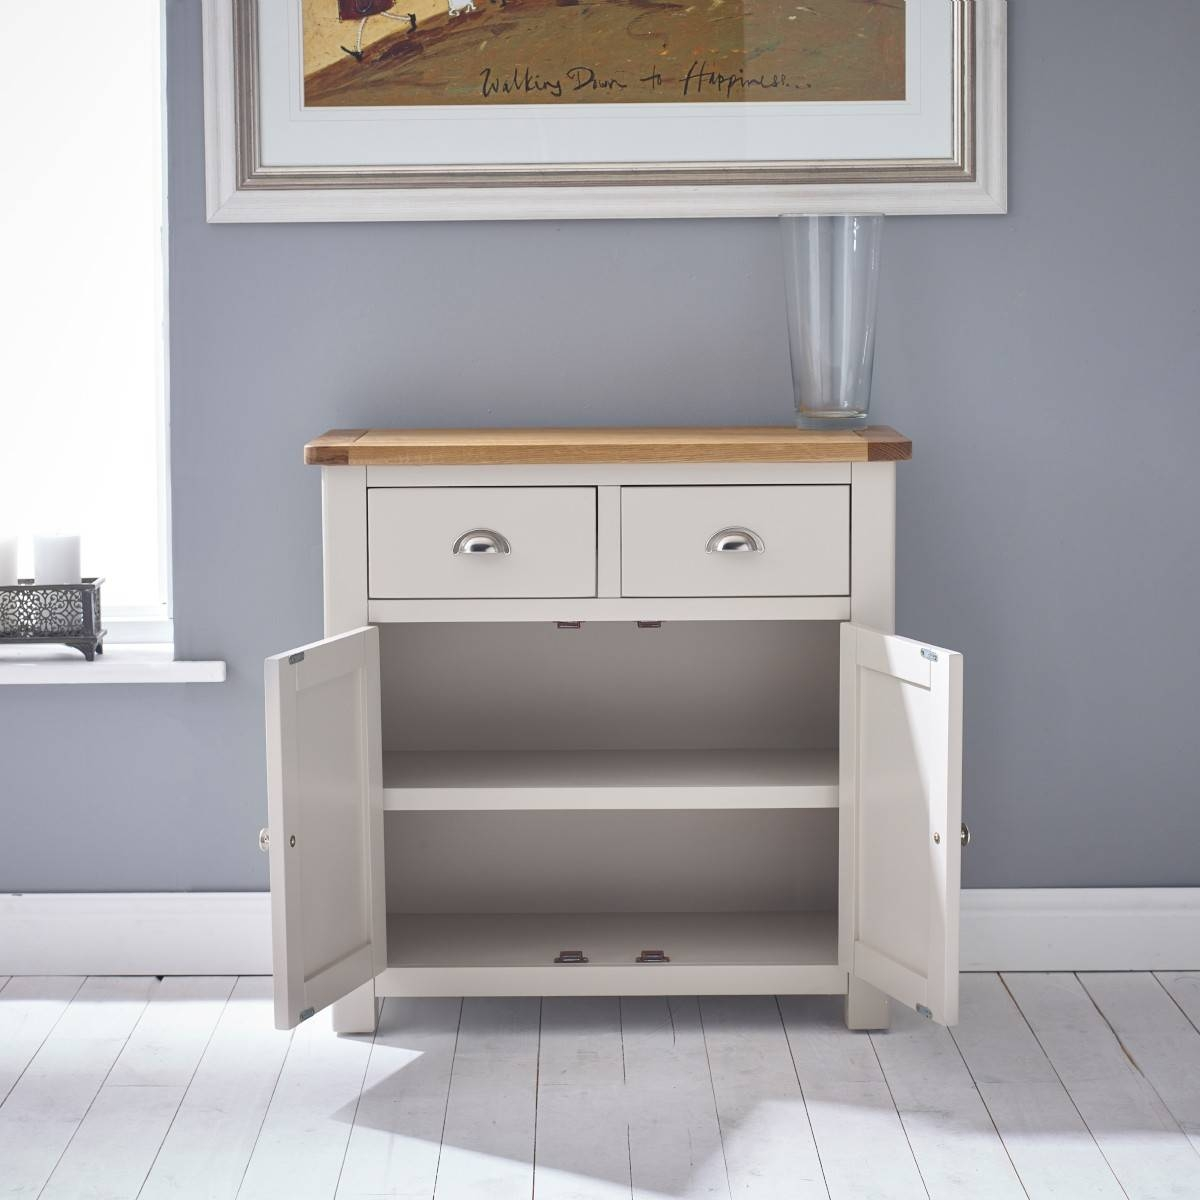 Hutch® - Portsmouth Stone Grey Painted Small Sideboard within Small Sideboards With Drawers (Image 10 of 30)